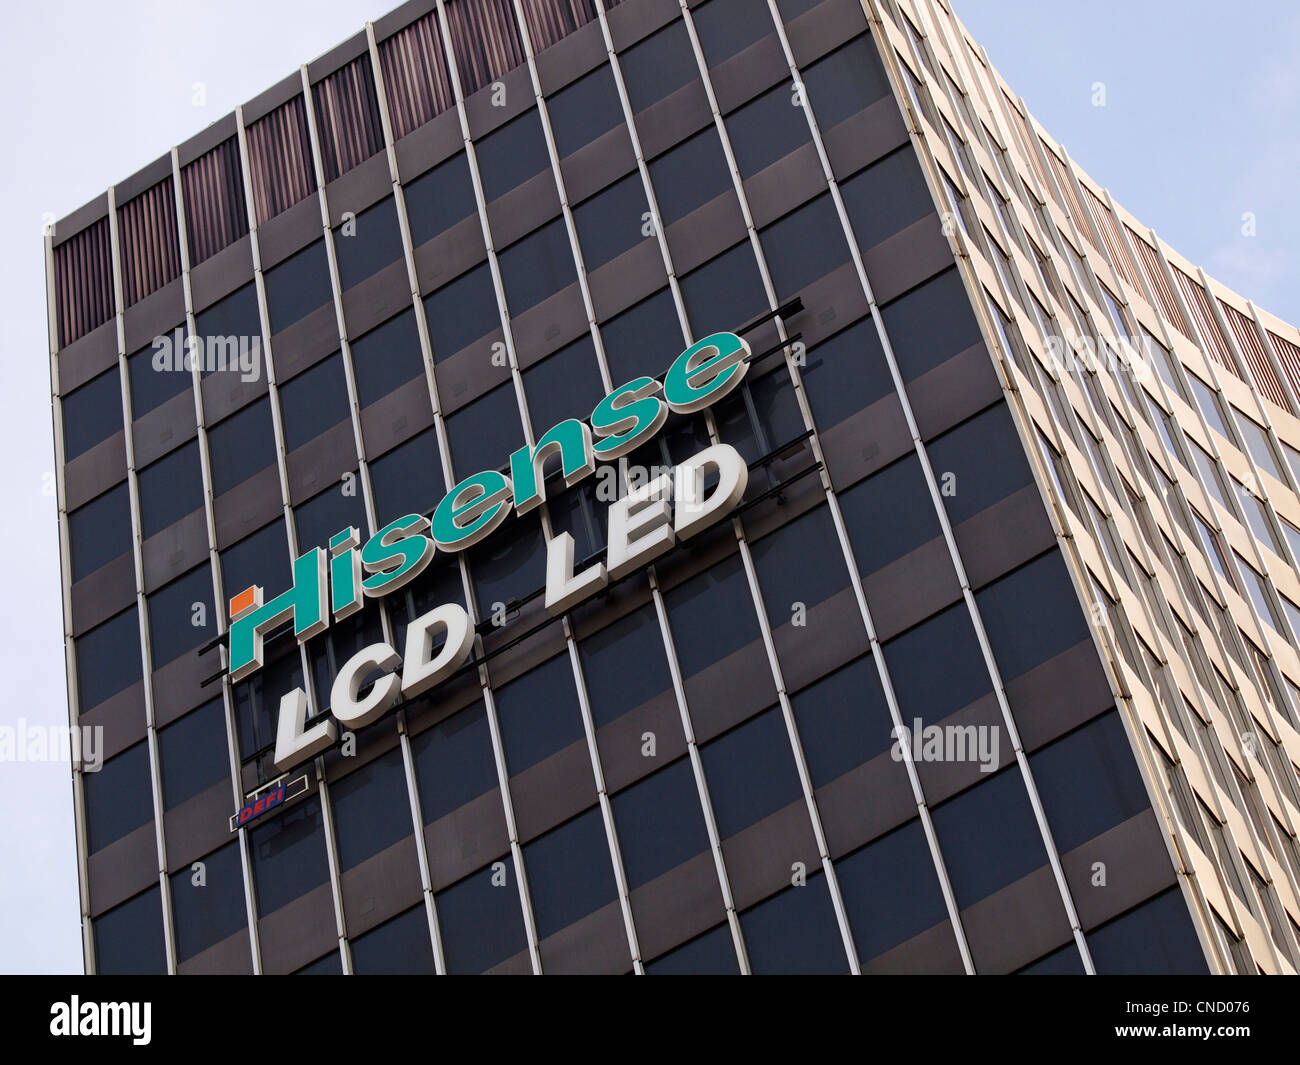 Hisense sign on a building in Brussels, Belgium. Hisense is a multinational electronics manufacturer based in China. - Stock Image